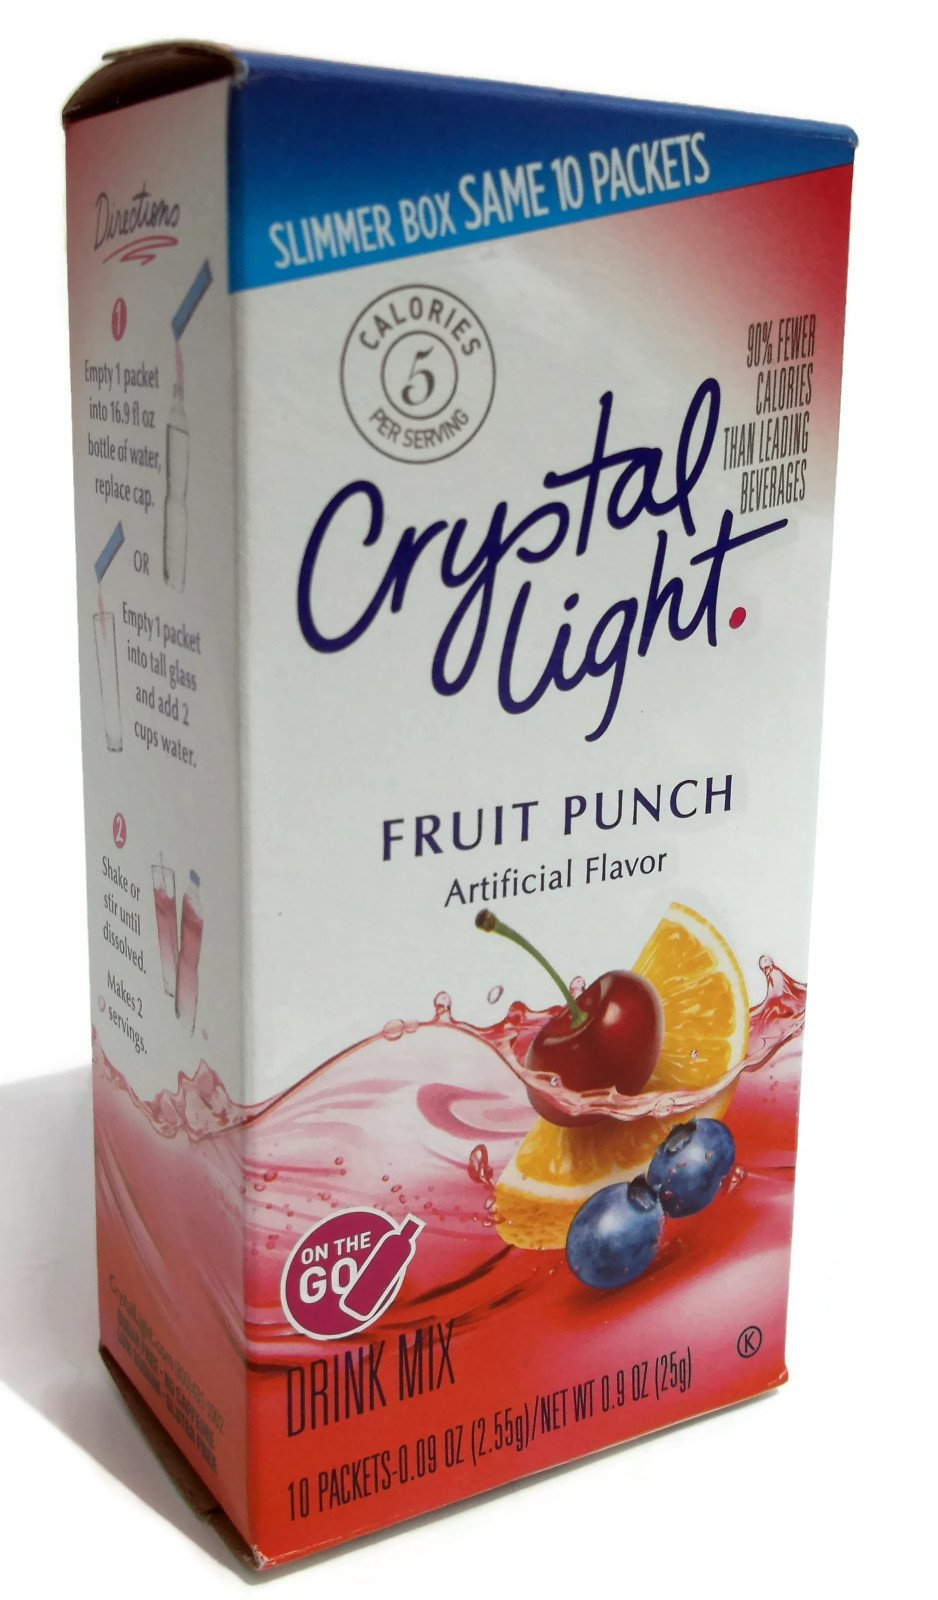 Crystal Light Drink Mix On The Go - 2 Boxes, 10 Sachets Per Box - Add to Glass or Bottle of Water (Fruit Punch) by Crystal Light (Image #3)